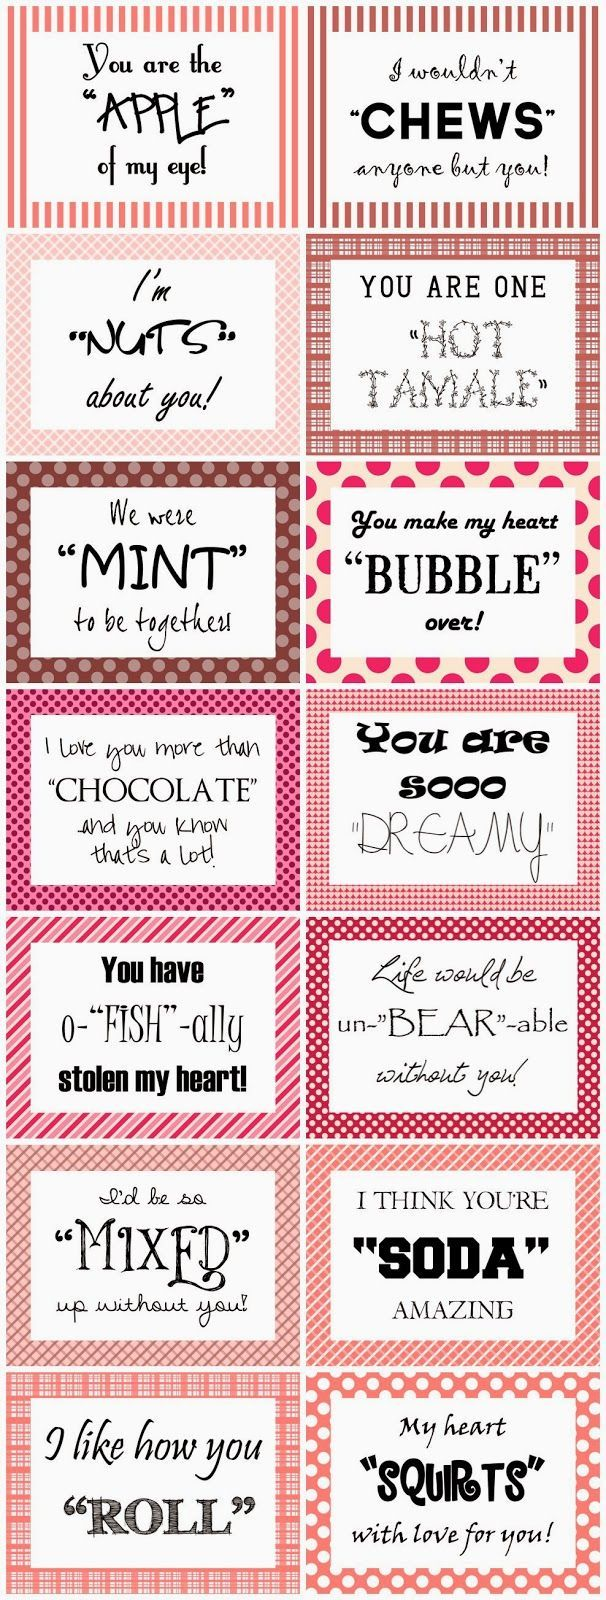 Bit Cheesey but ... cute for Valentine Care packages - Heart Expressions Design: Free 14 Days of Valentines download